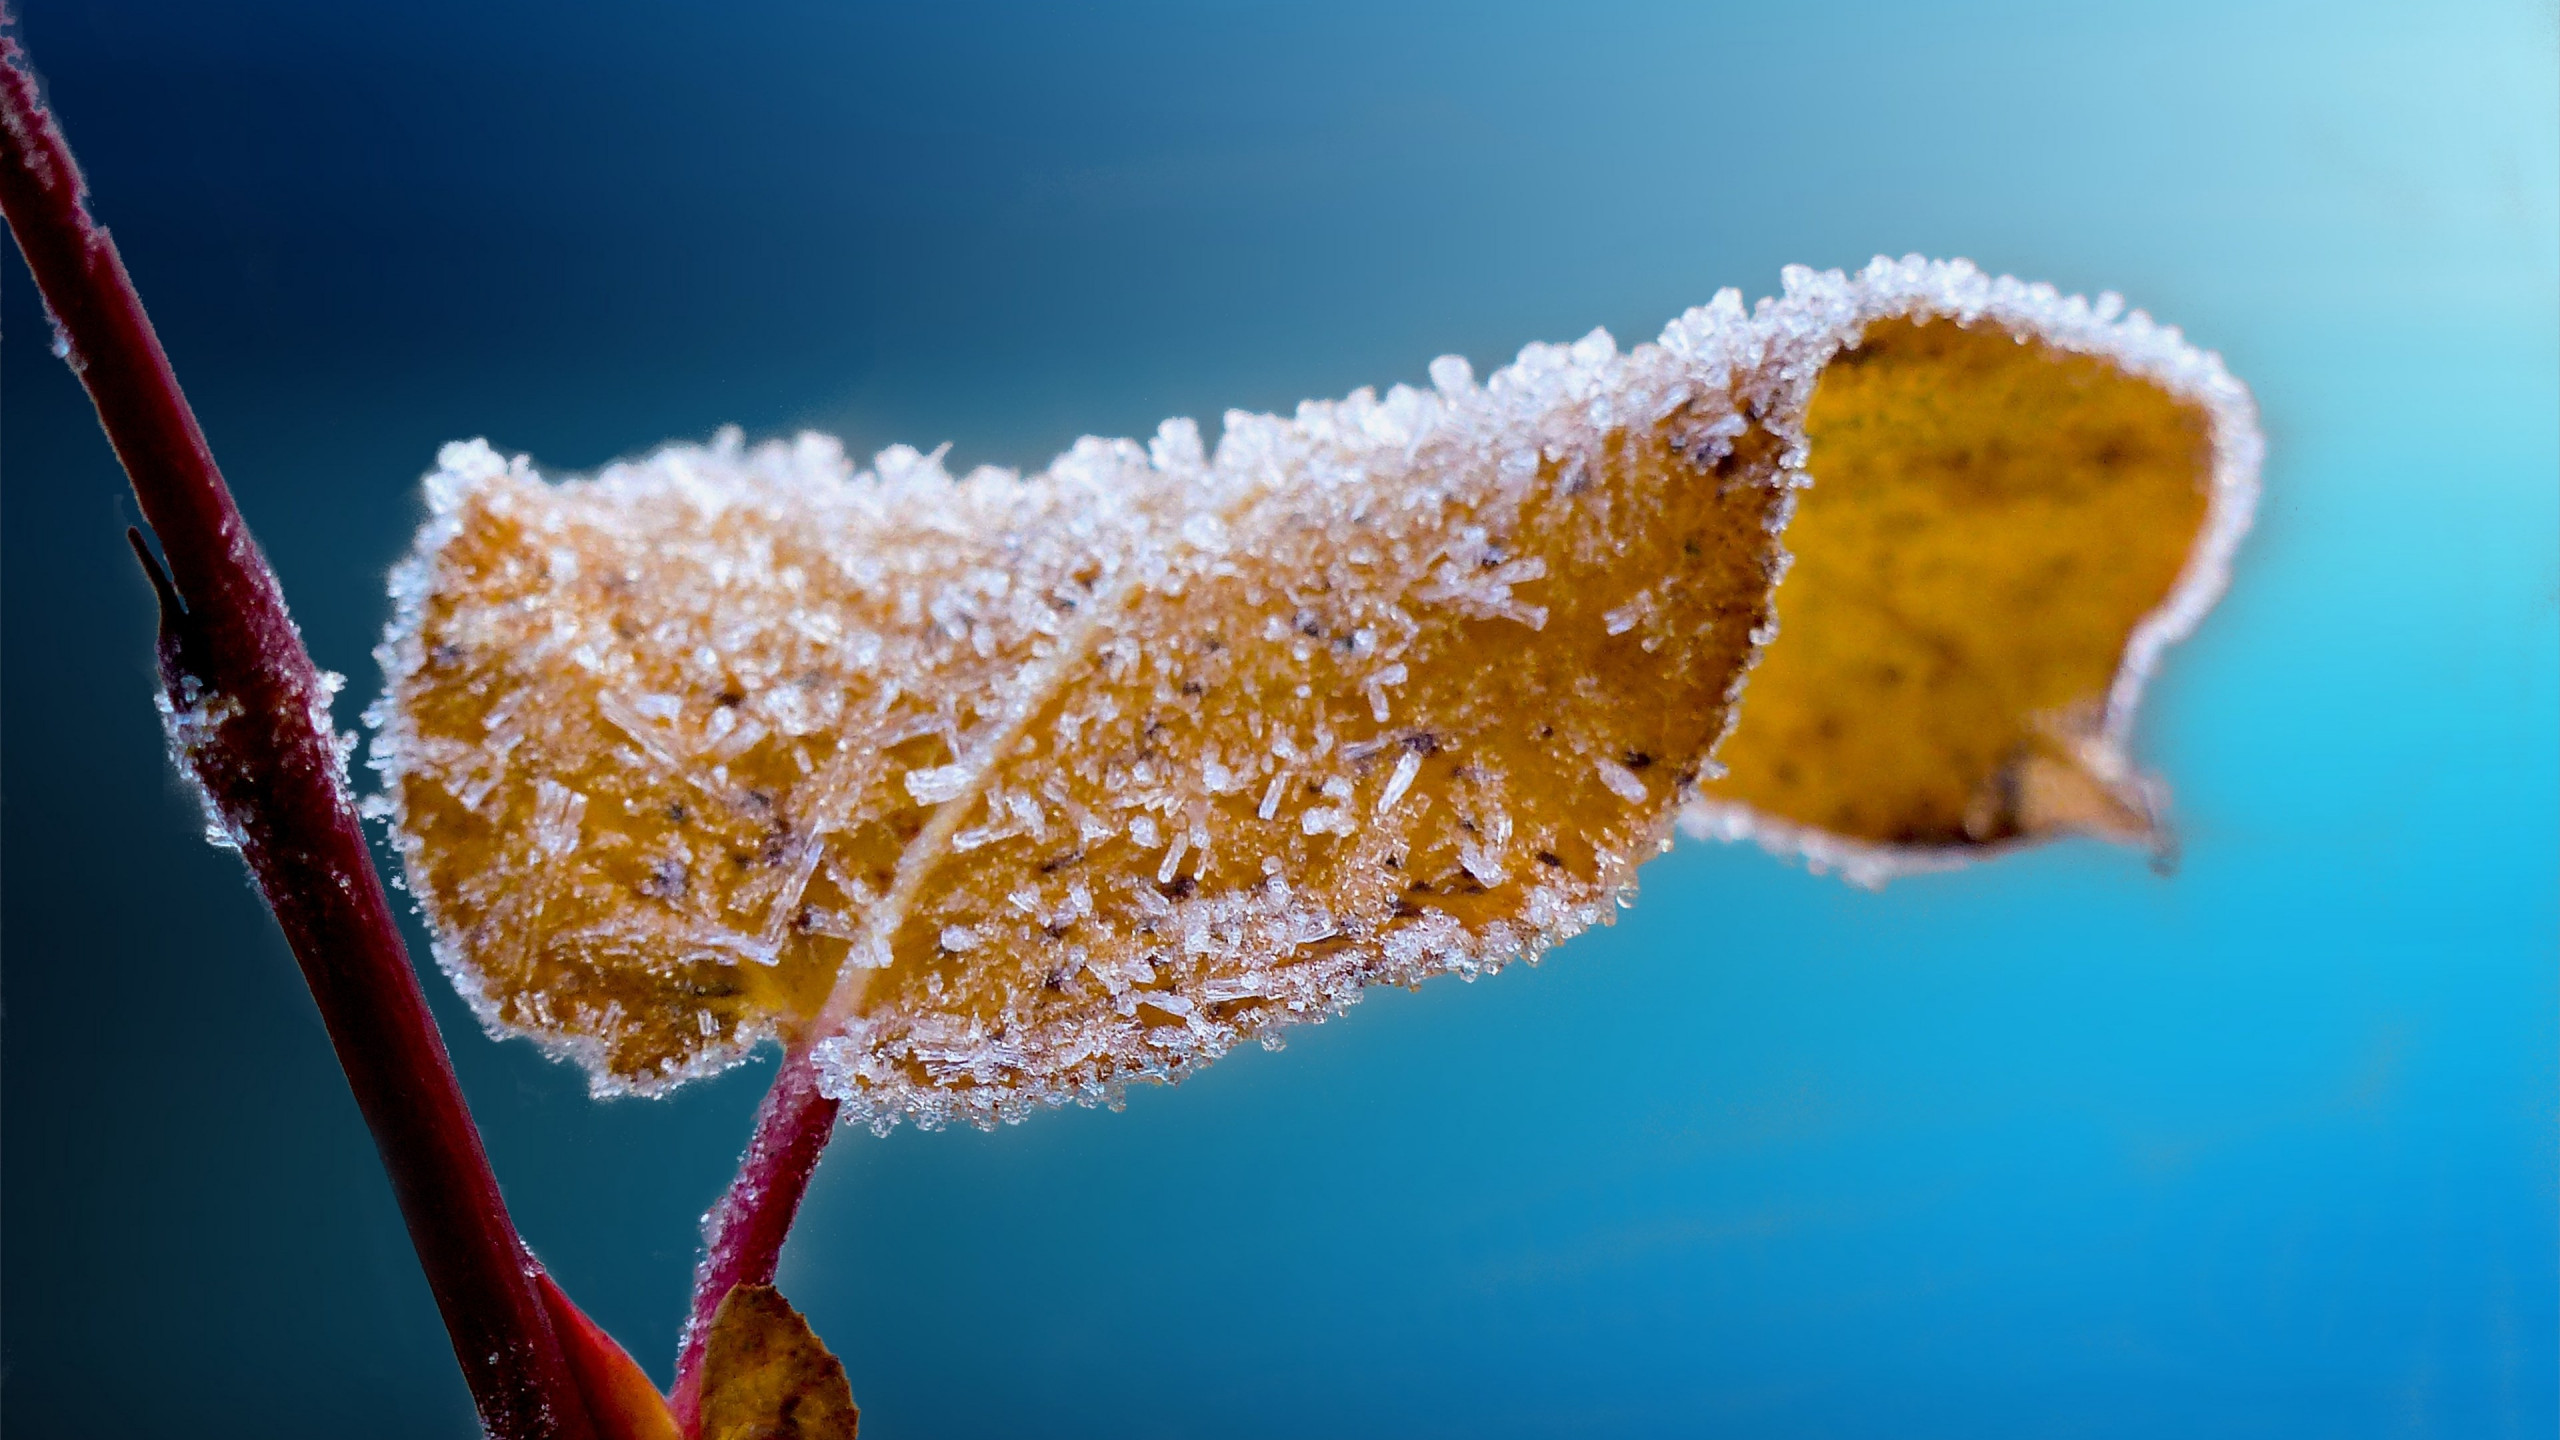 Frosted leaf | 2560x1440 wallpaper